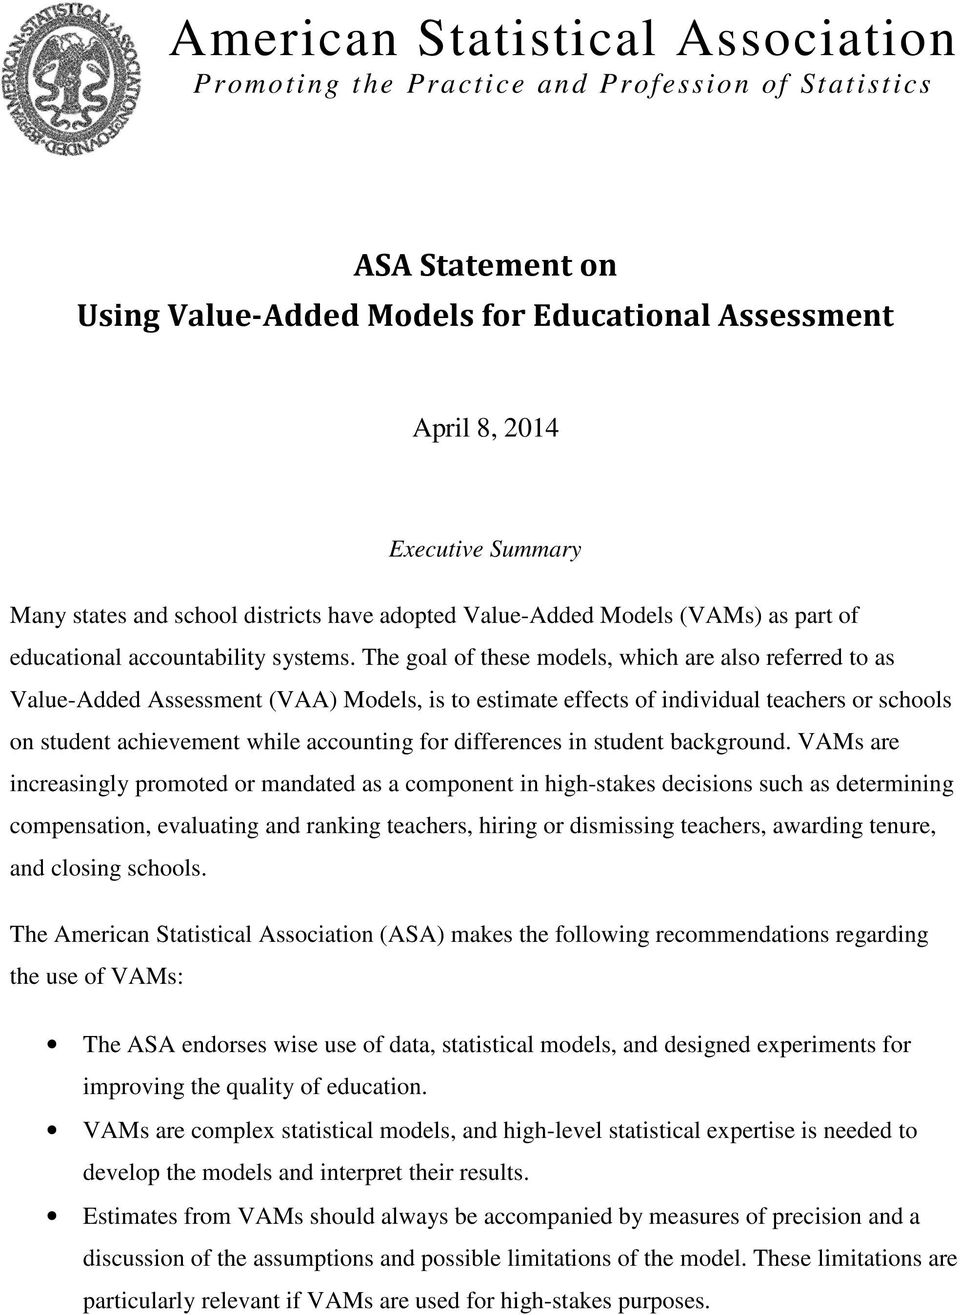 The goal of these models, which are also referred to as Value-Added Assessment (VAA) Models, is to estimate effects of individual teachers or schools on student achievement while accounting for